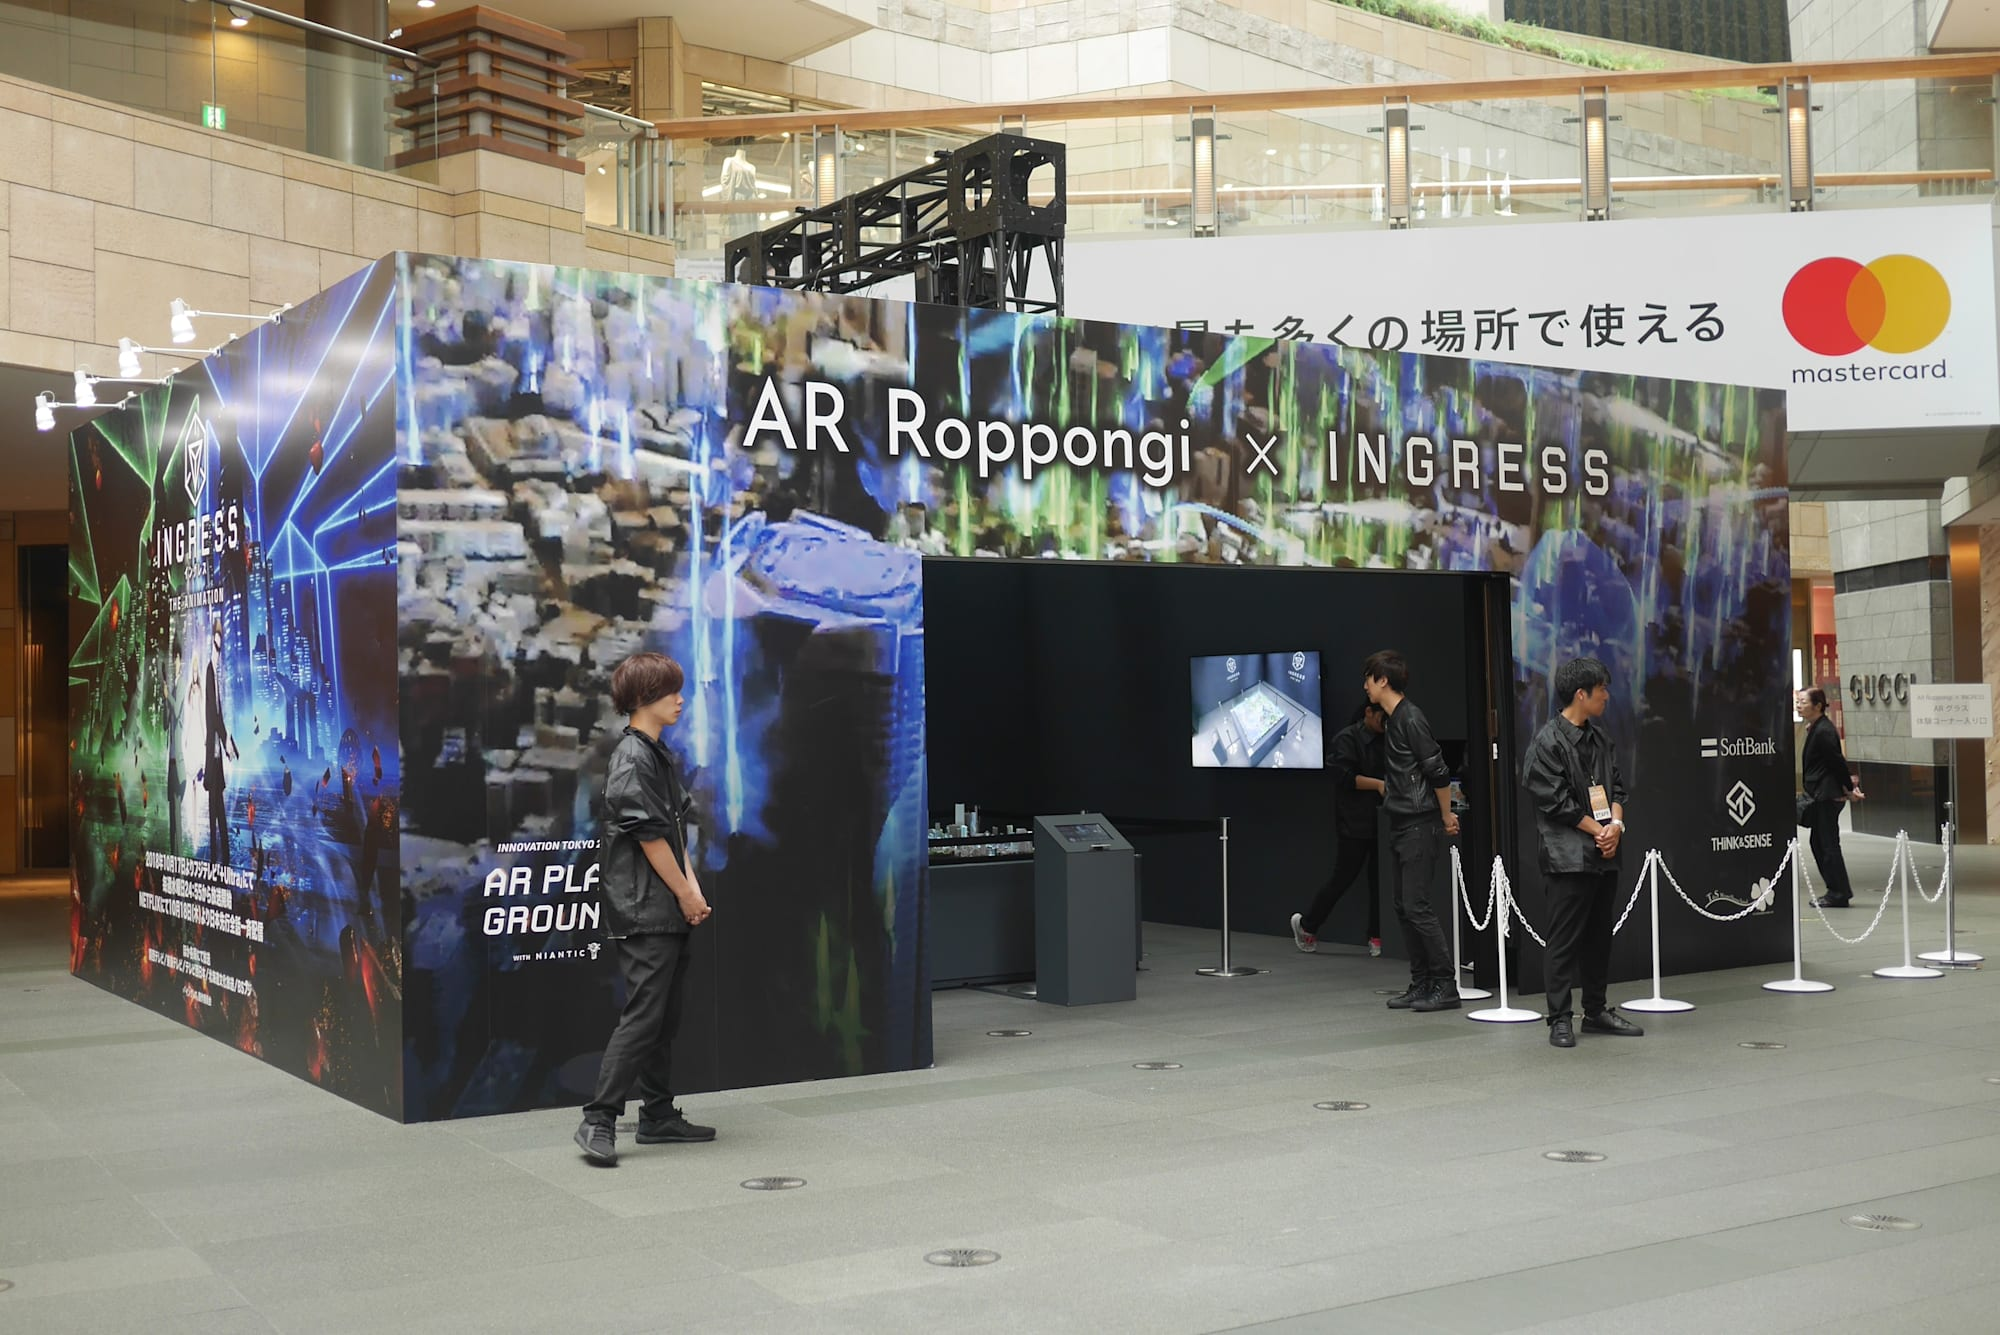 AR Roppongi x INGRESS